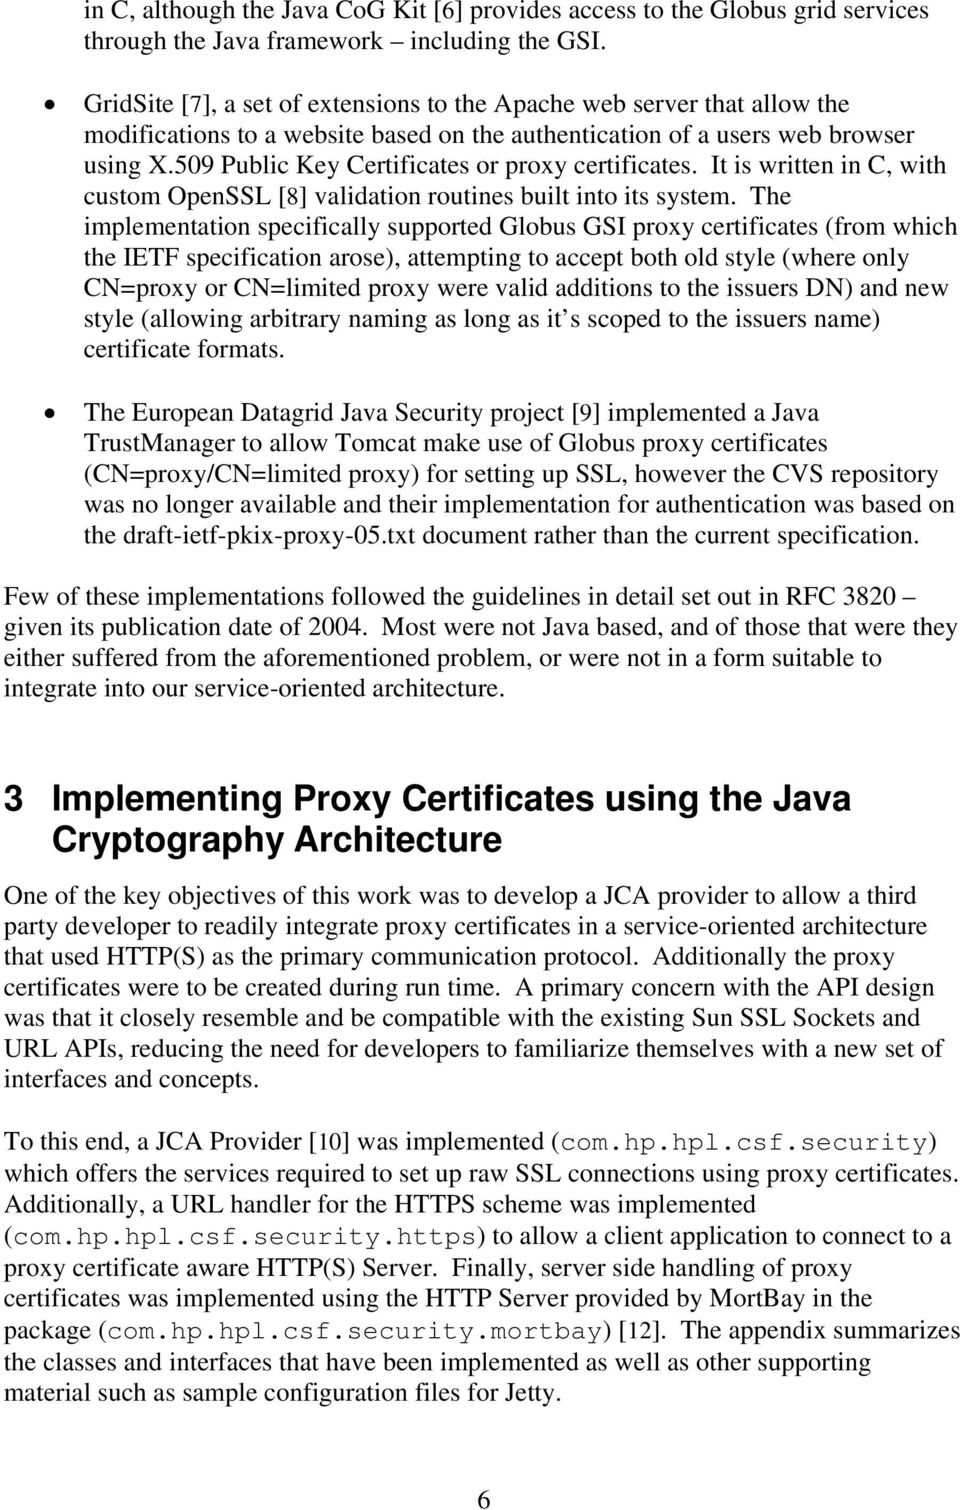 509 Public Key Certificates or proxy certificates. It is written in C, with custom OpenSSL [8] validation routines built into its system.